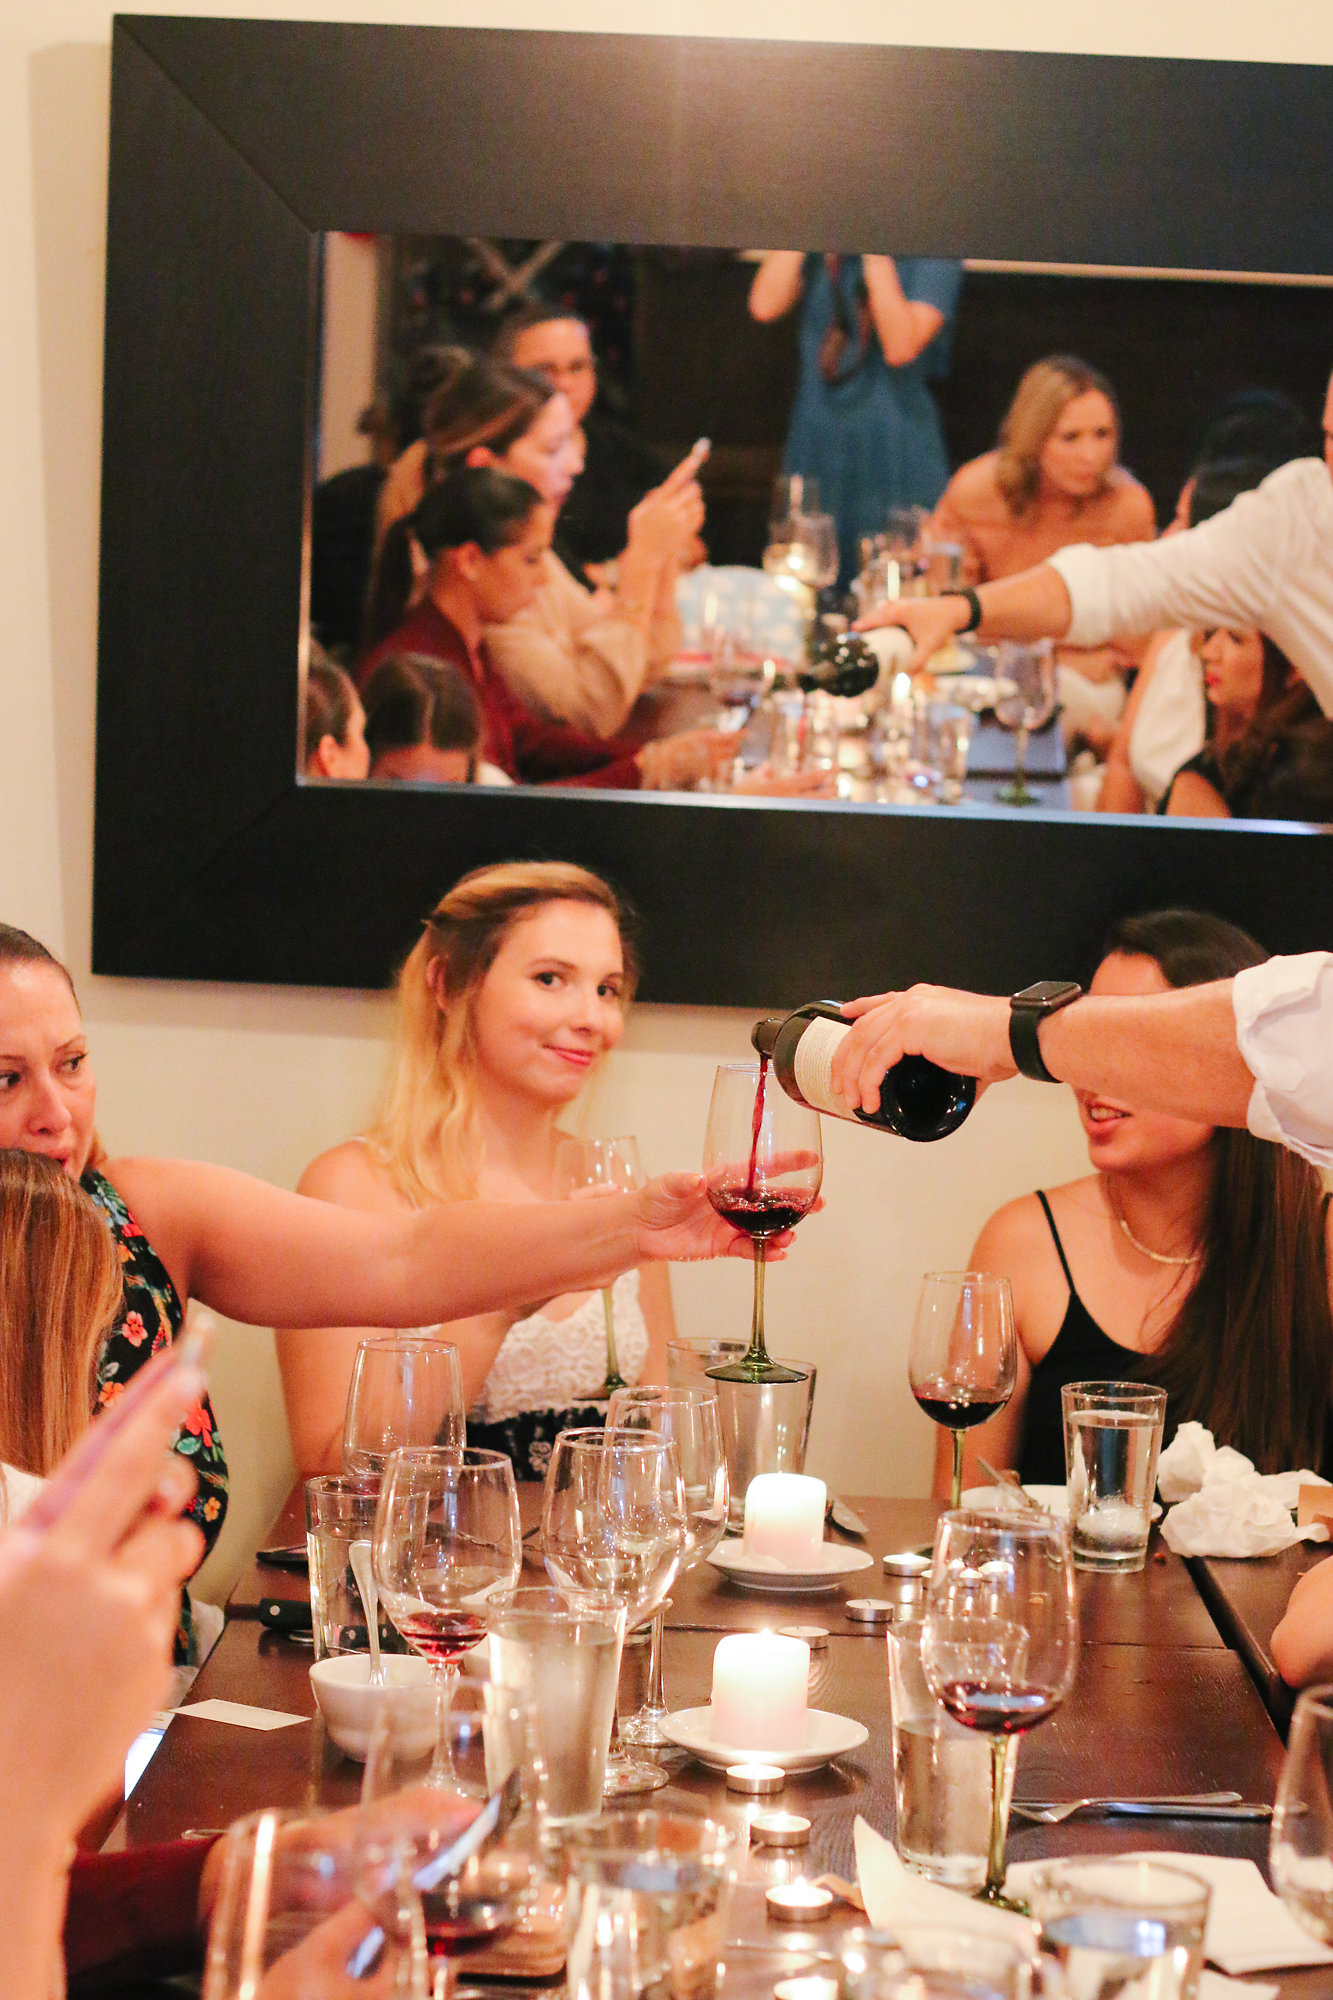 Women Who Wine_Uncorked Conversations_Off The Mile_Miami Wine Events_Wine Tasting Miami_61.jpg